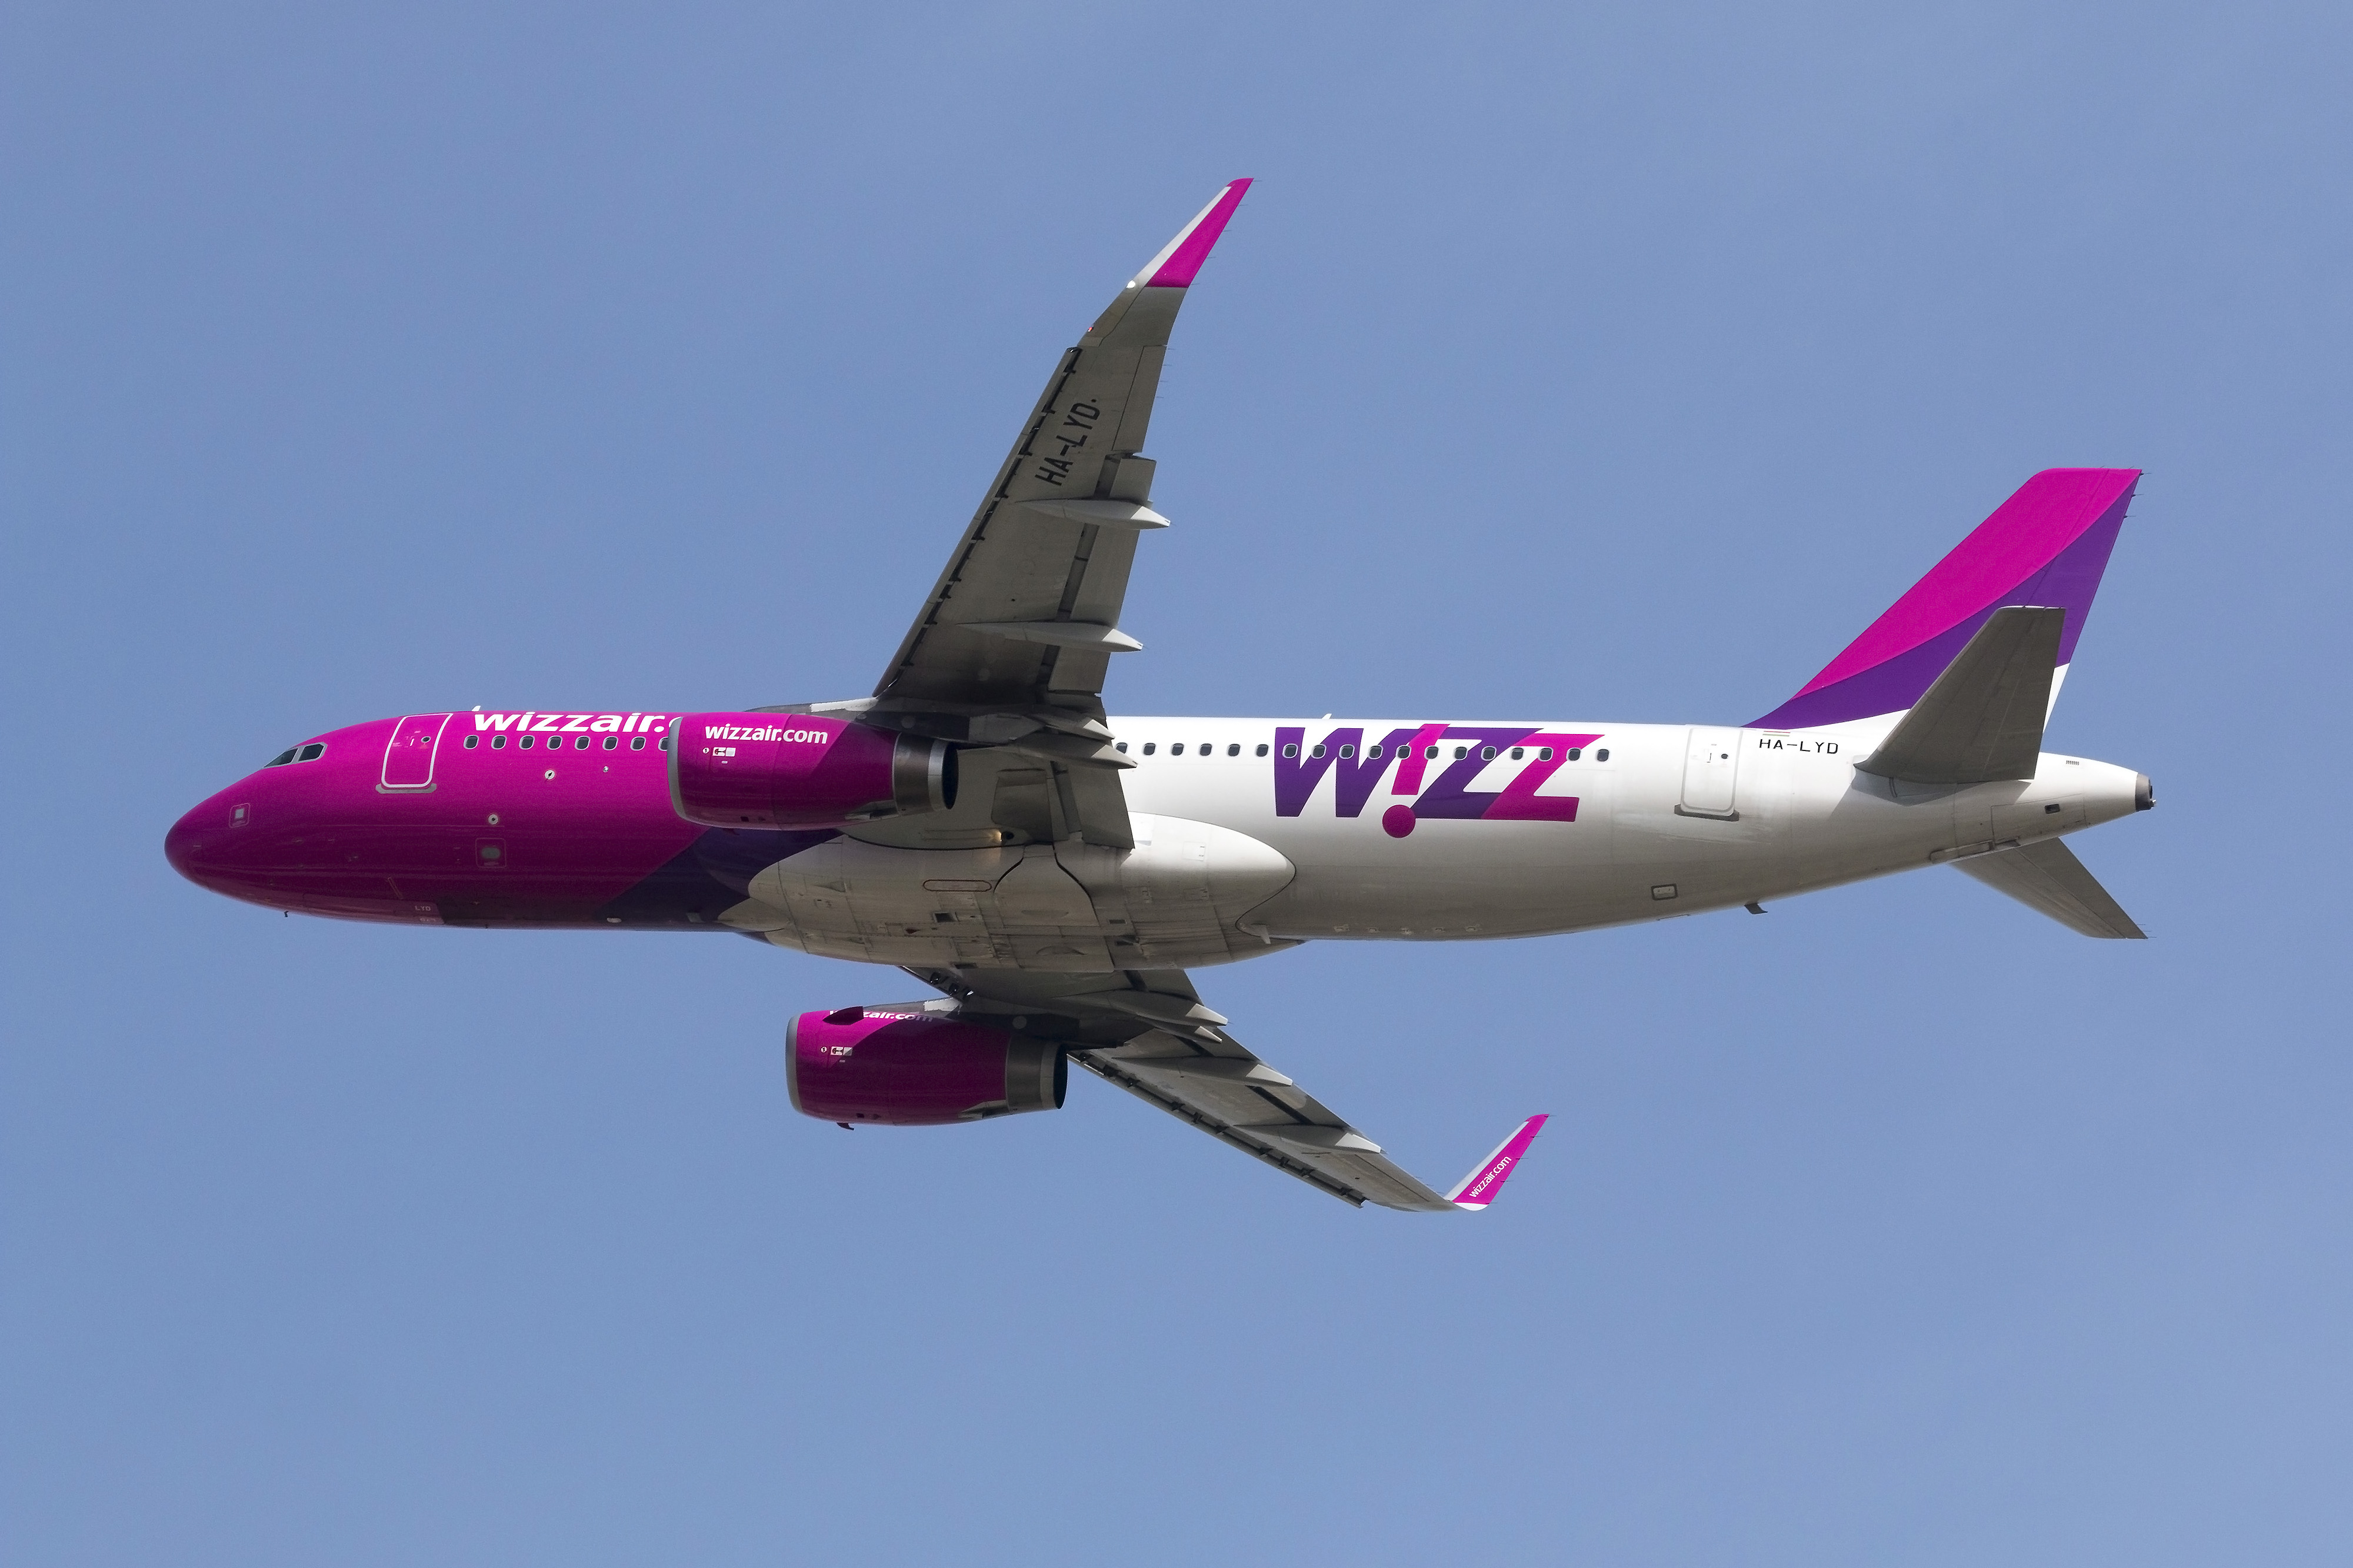 Wizz Air Fastest Growing Top 20 European Airline Group Keeps Ryanair At Bay On E C Europe W Europe Capa